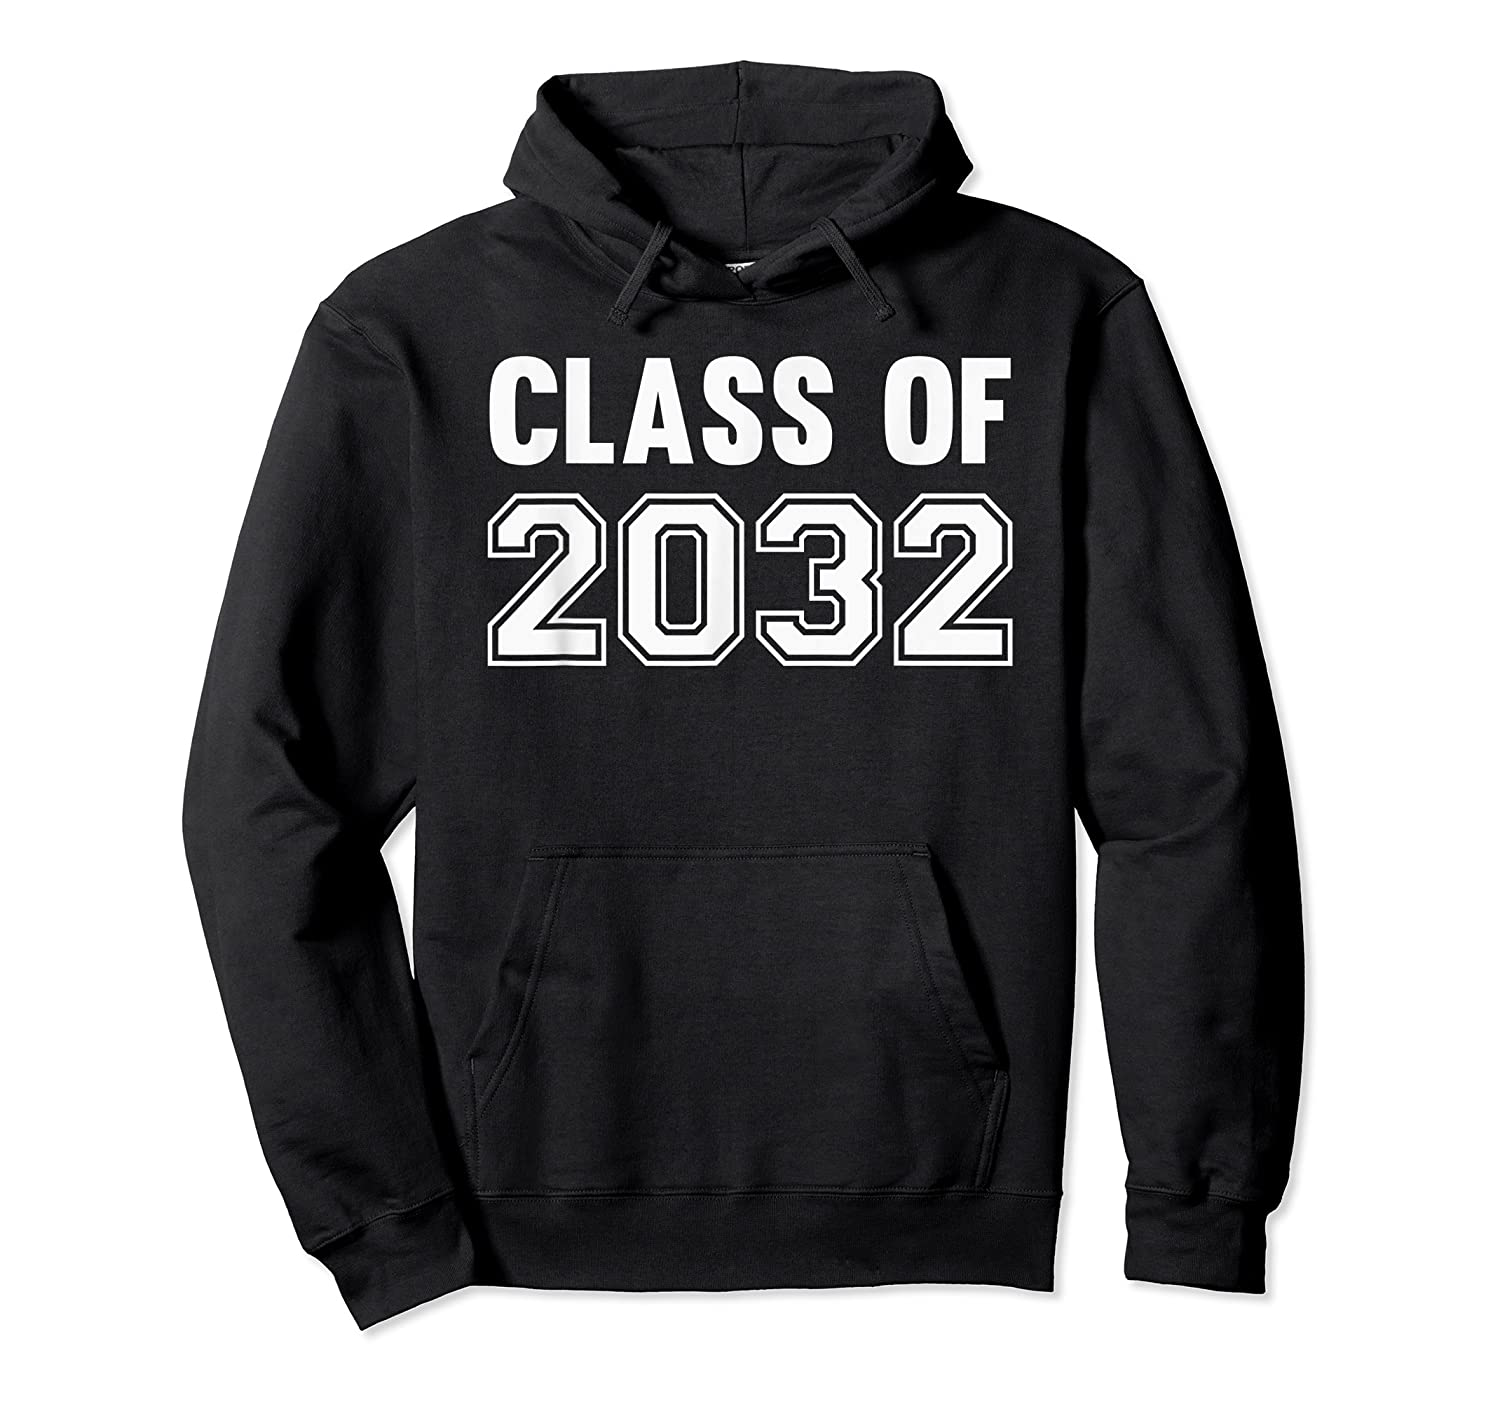 Class Of 2031 Grow With Me First Day Of School Shirts Unisex Pullover Hoodie